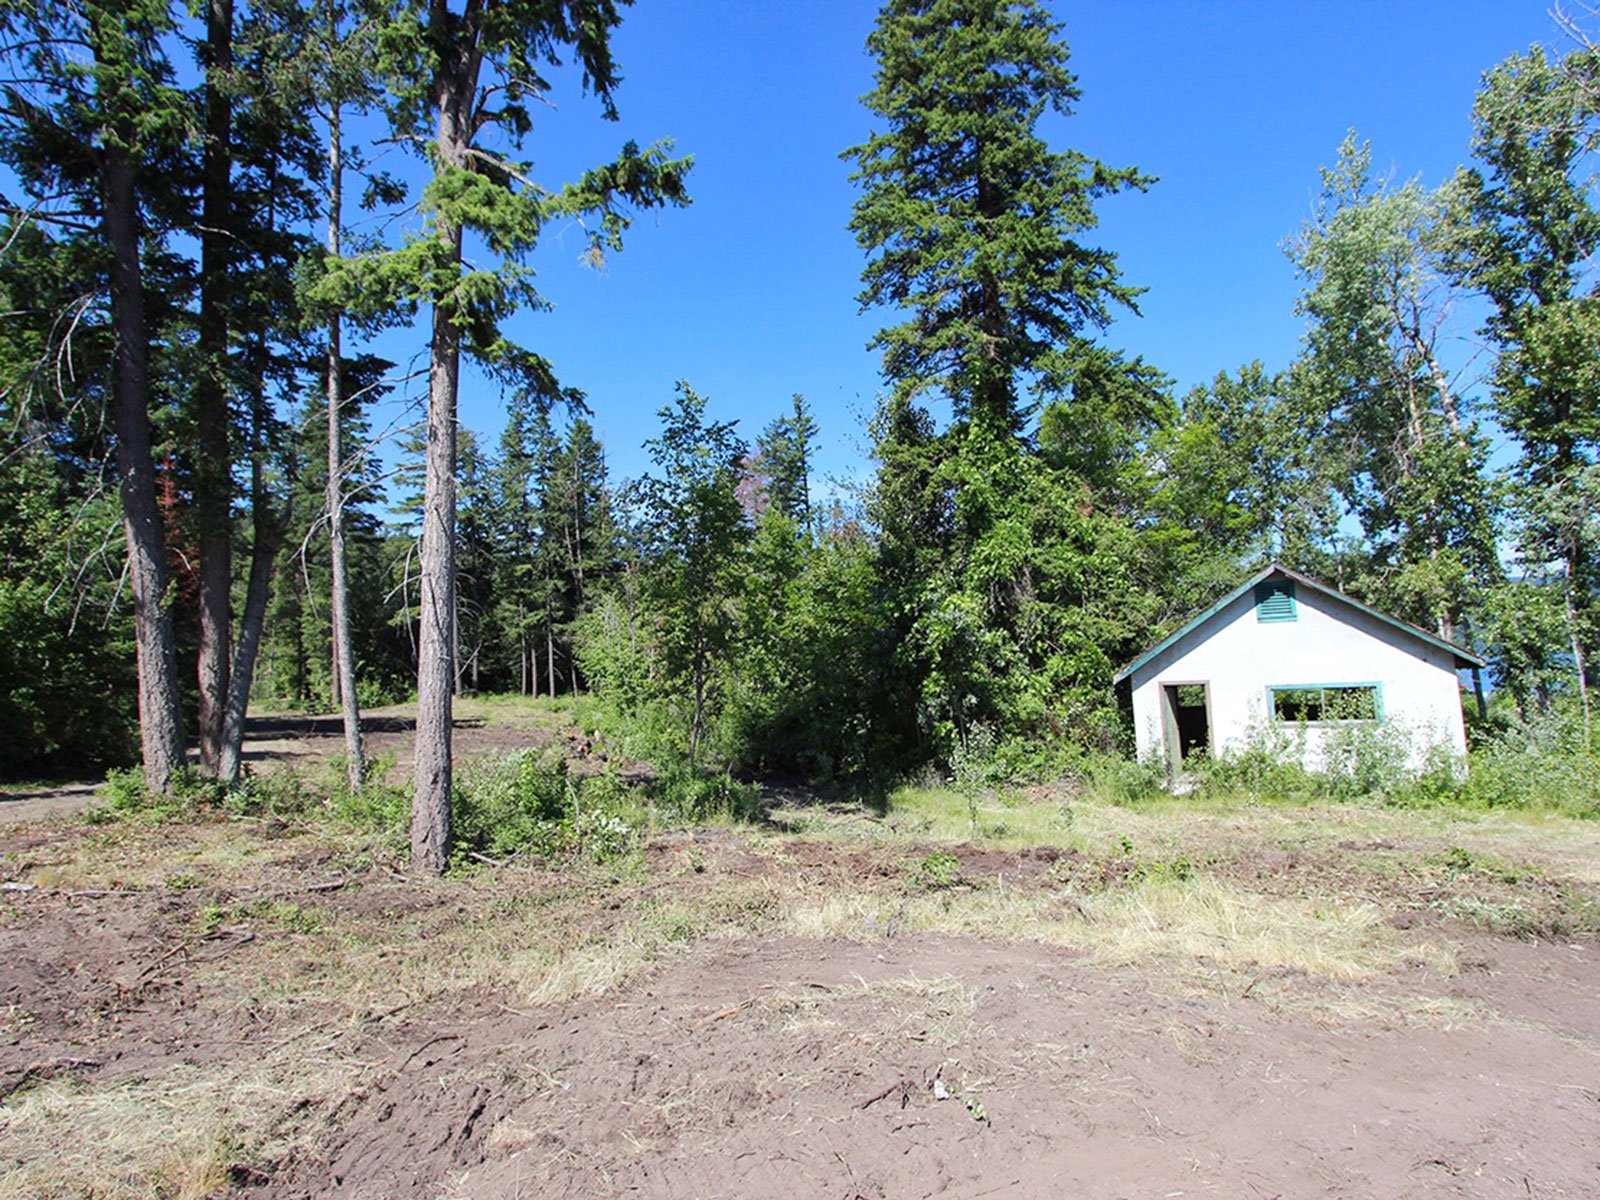 Photo 18: Photos: 663 Waverly Park Frontage Road in Sorrento, BC: Land Only for sale (Sorrento)  : MLS®# 10186241